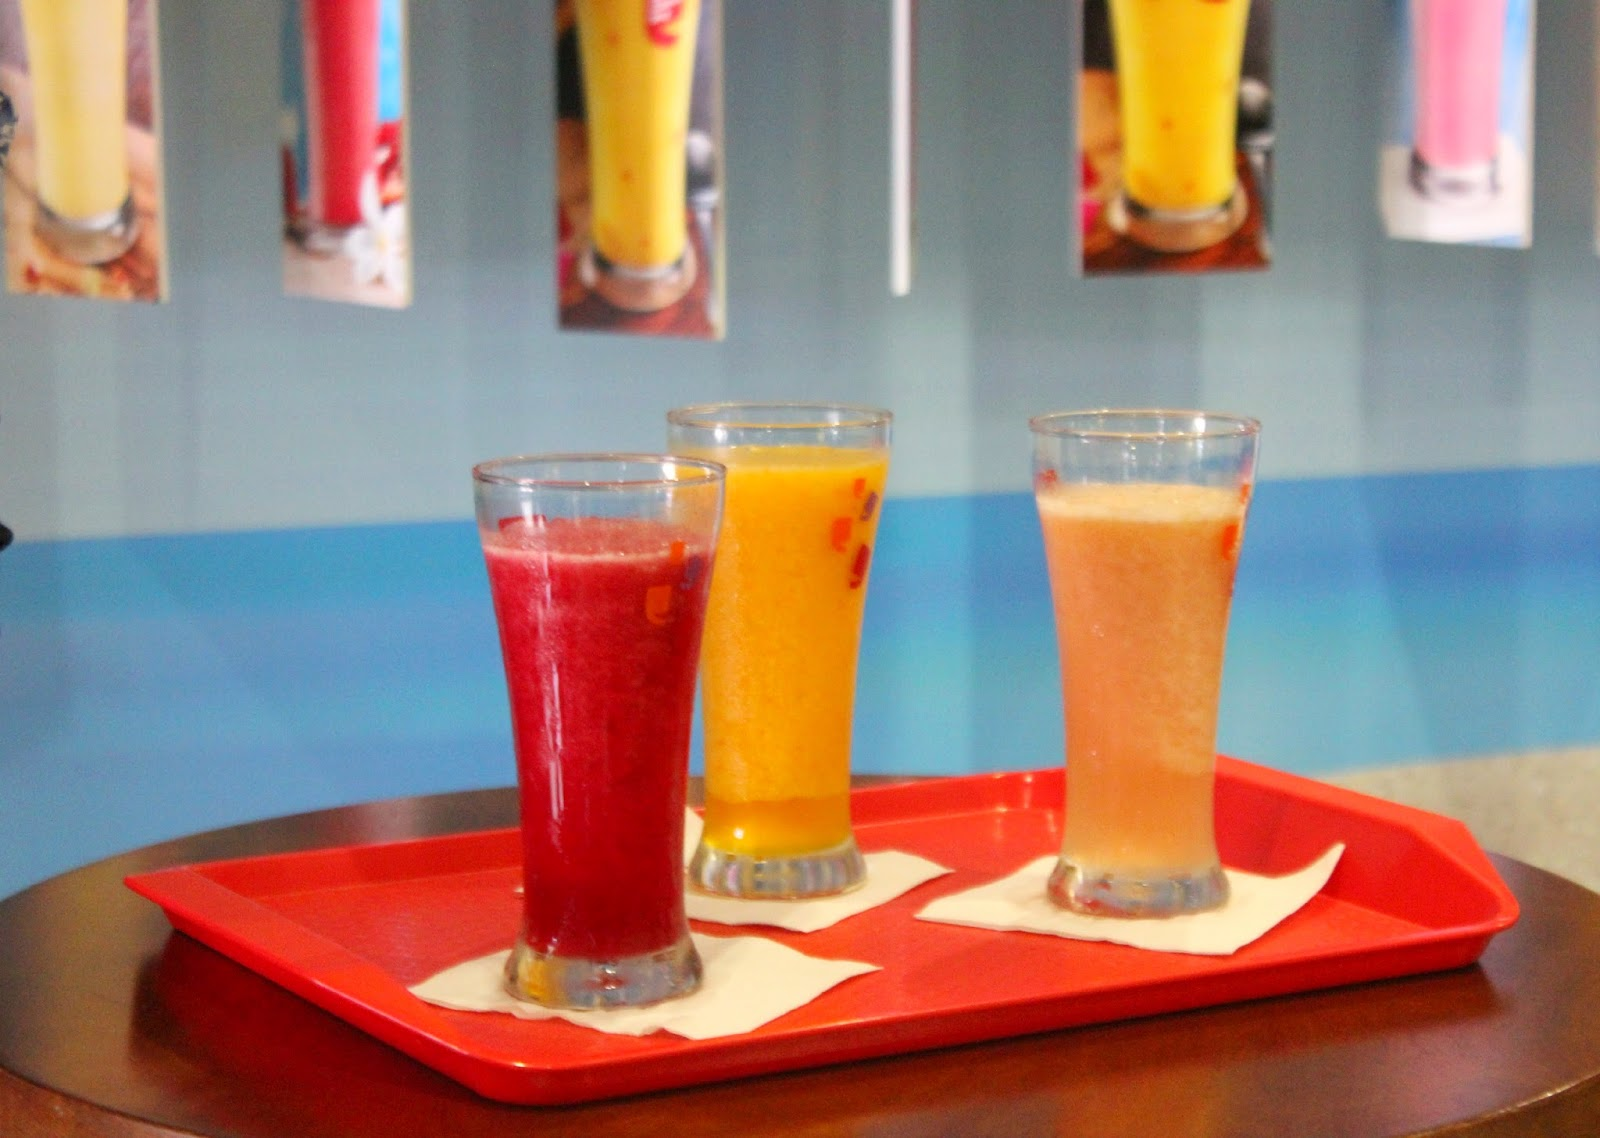 Cafe Coffee Day Summer Slam - Smoothies & Slushes